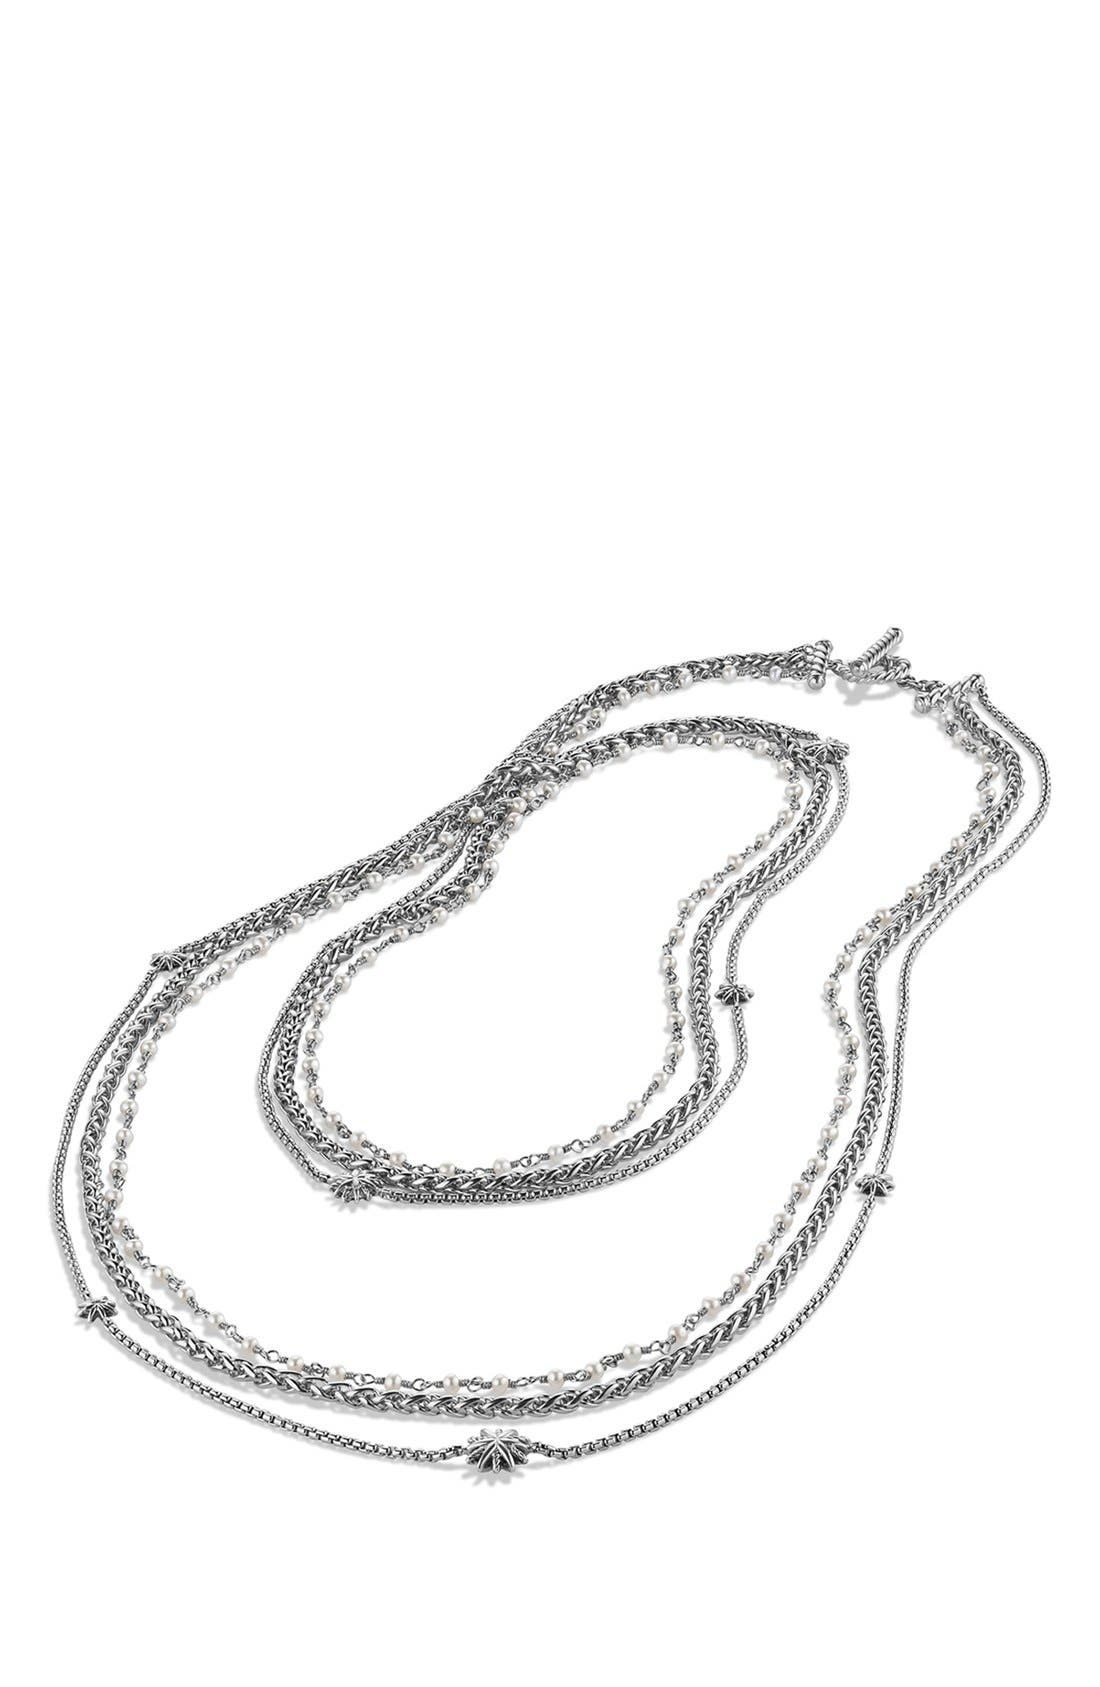 DAVID YURMAN,                             'Starburst' Chain Necklace with Pearls,                             Alternate thumbnail 2, color,                             PEARL/ SILVER